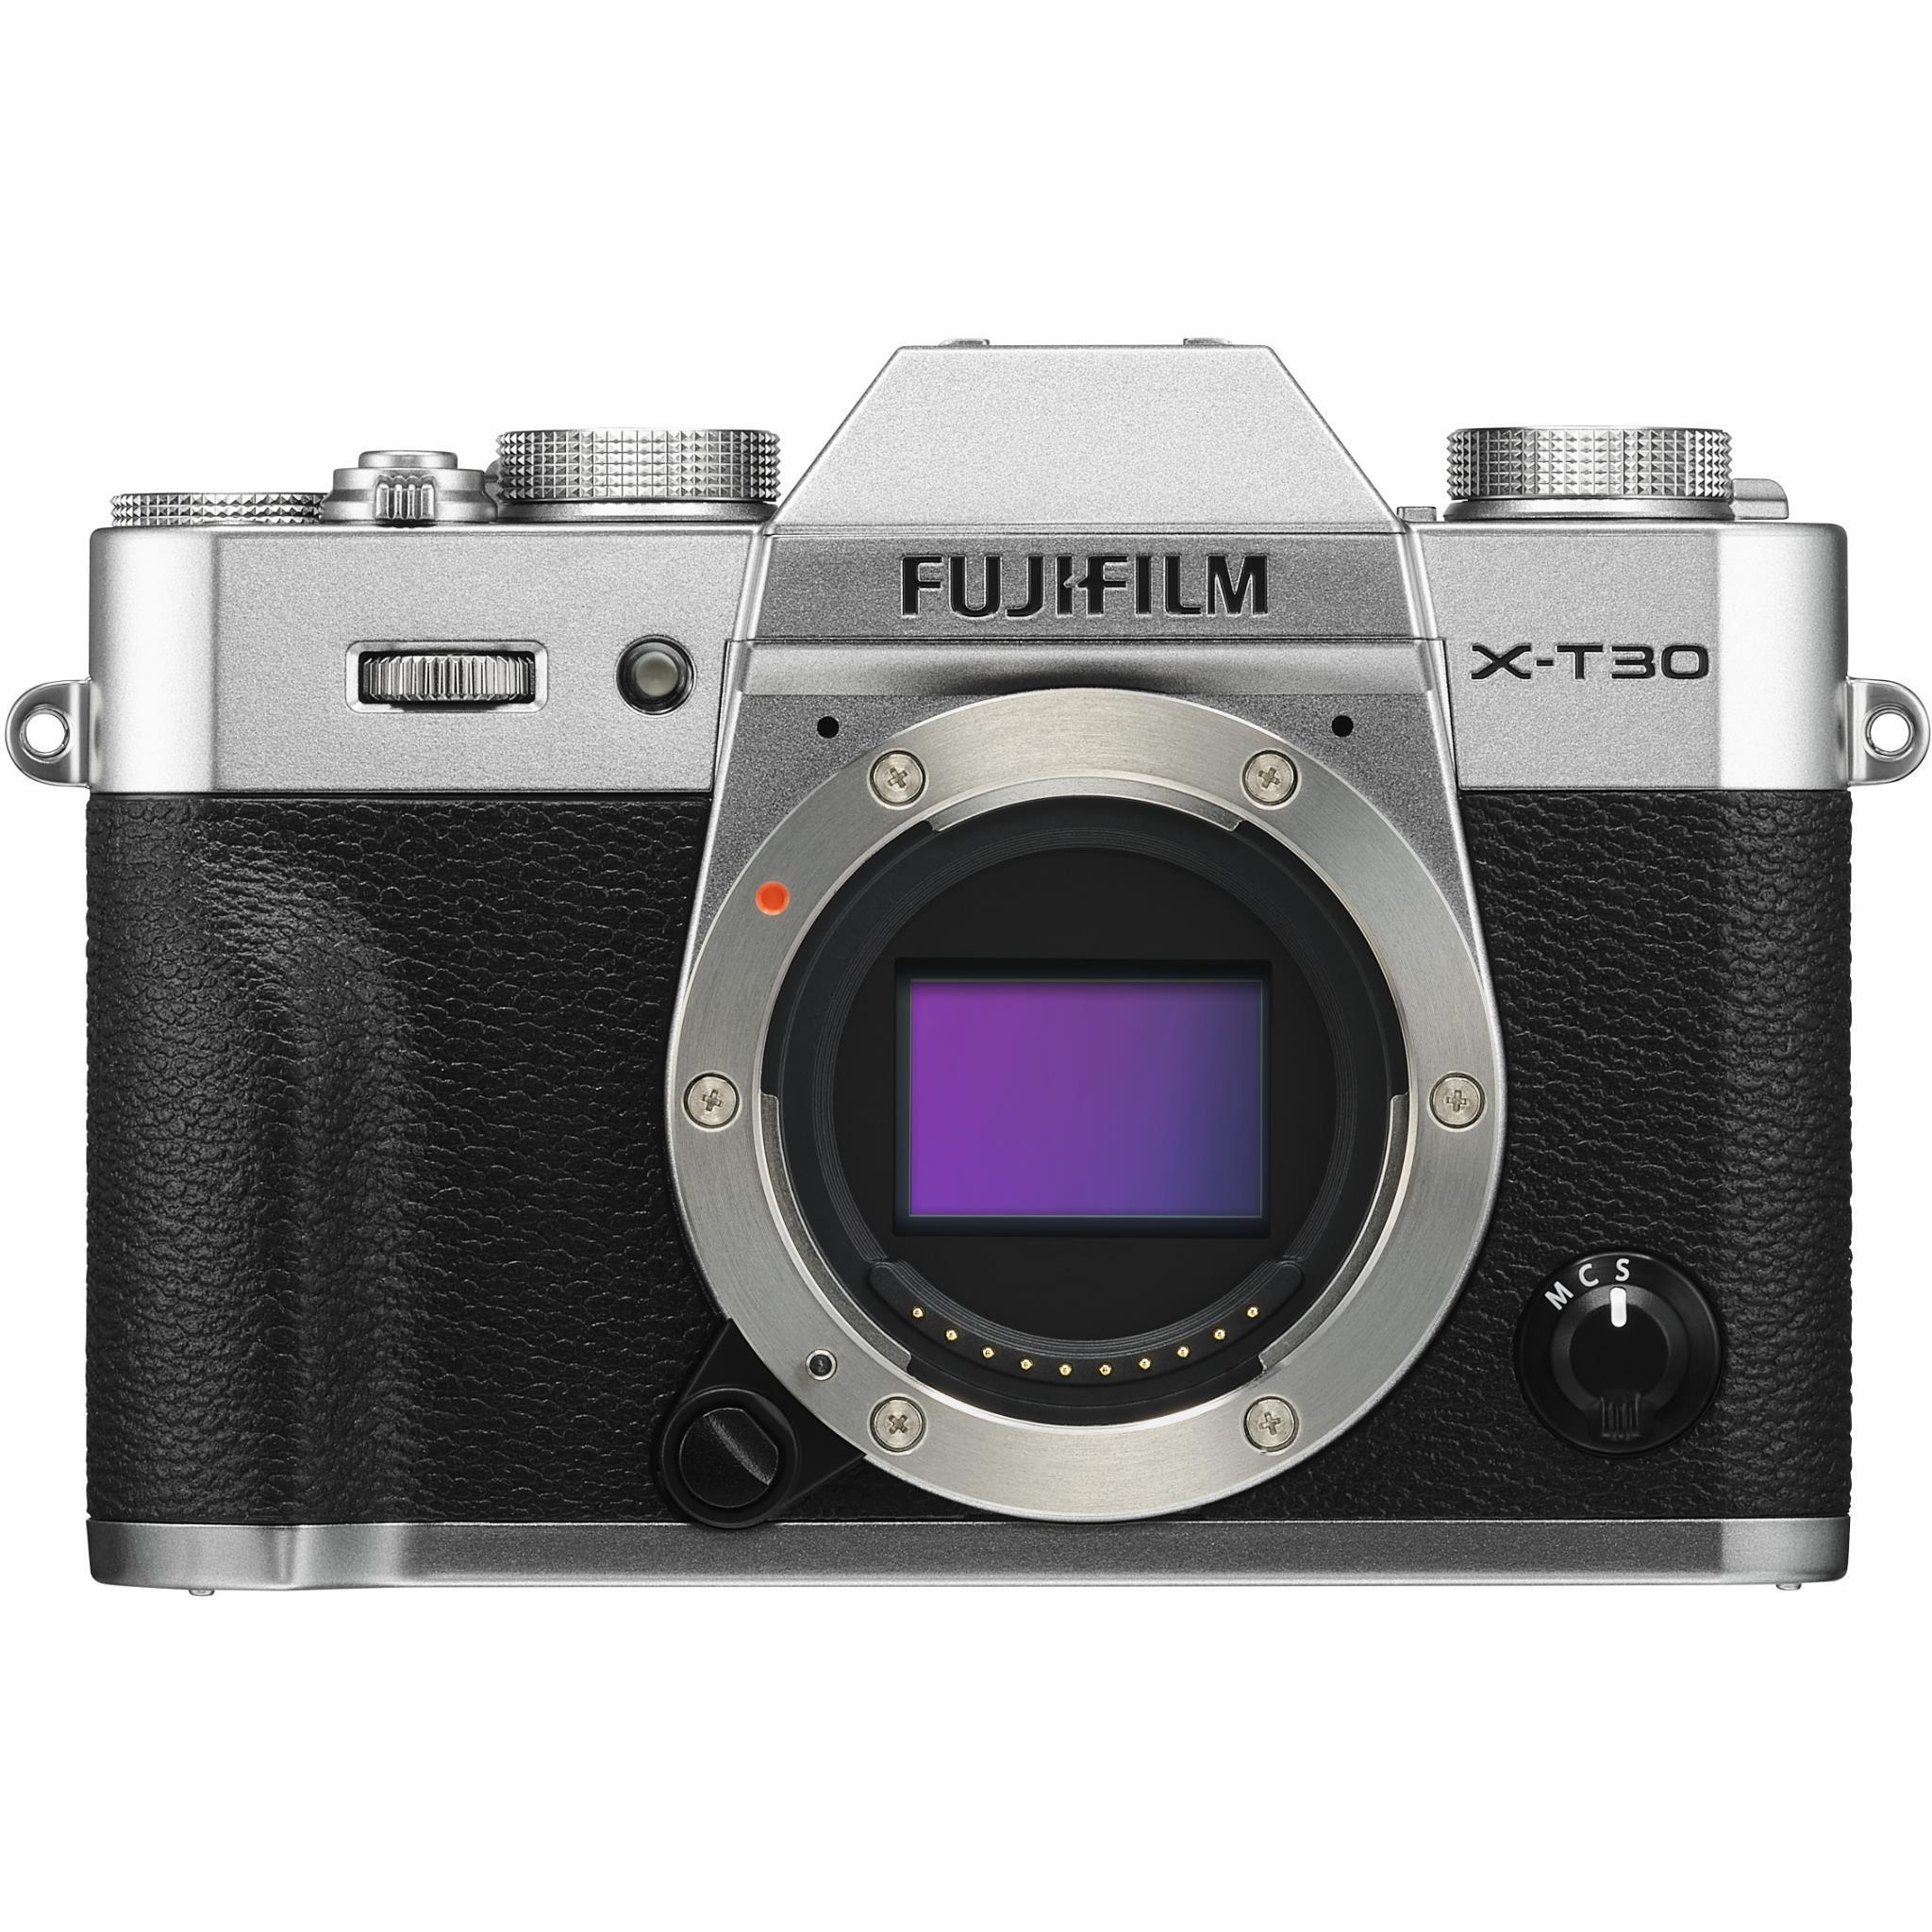 Fujifilm X-T30 Mirrorless Camera [Body Only] (Silver)